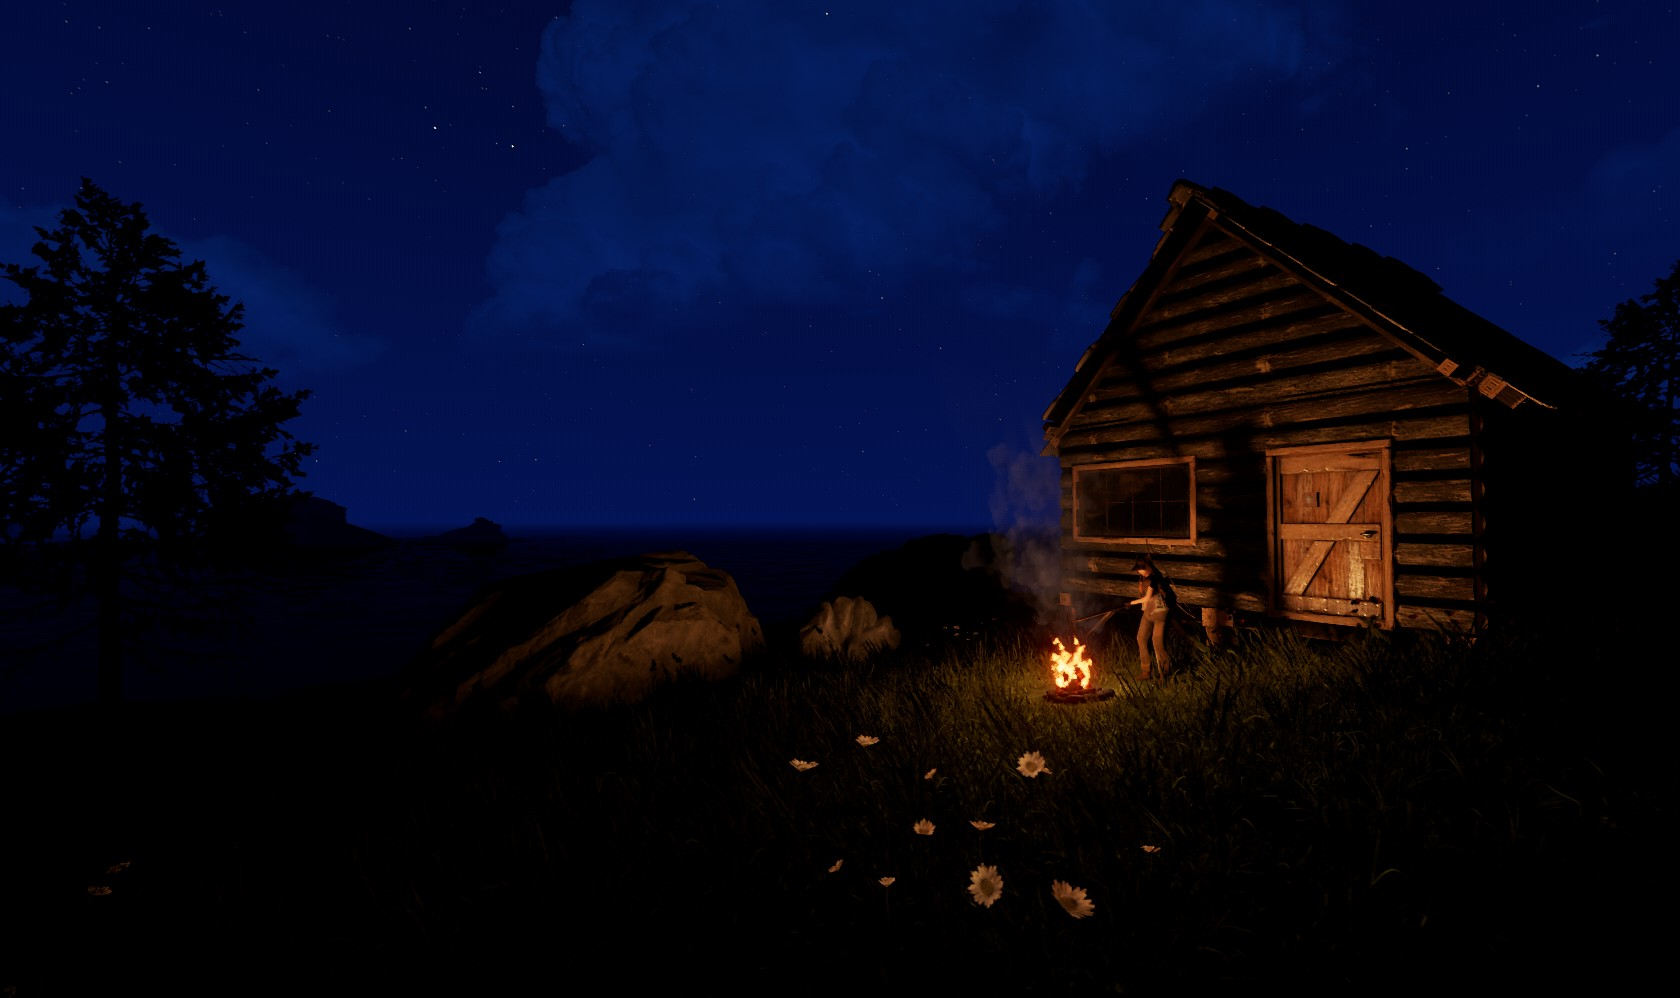 Rust [v2057, Devblog 197] (2018) PC